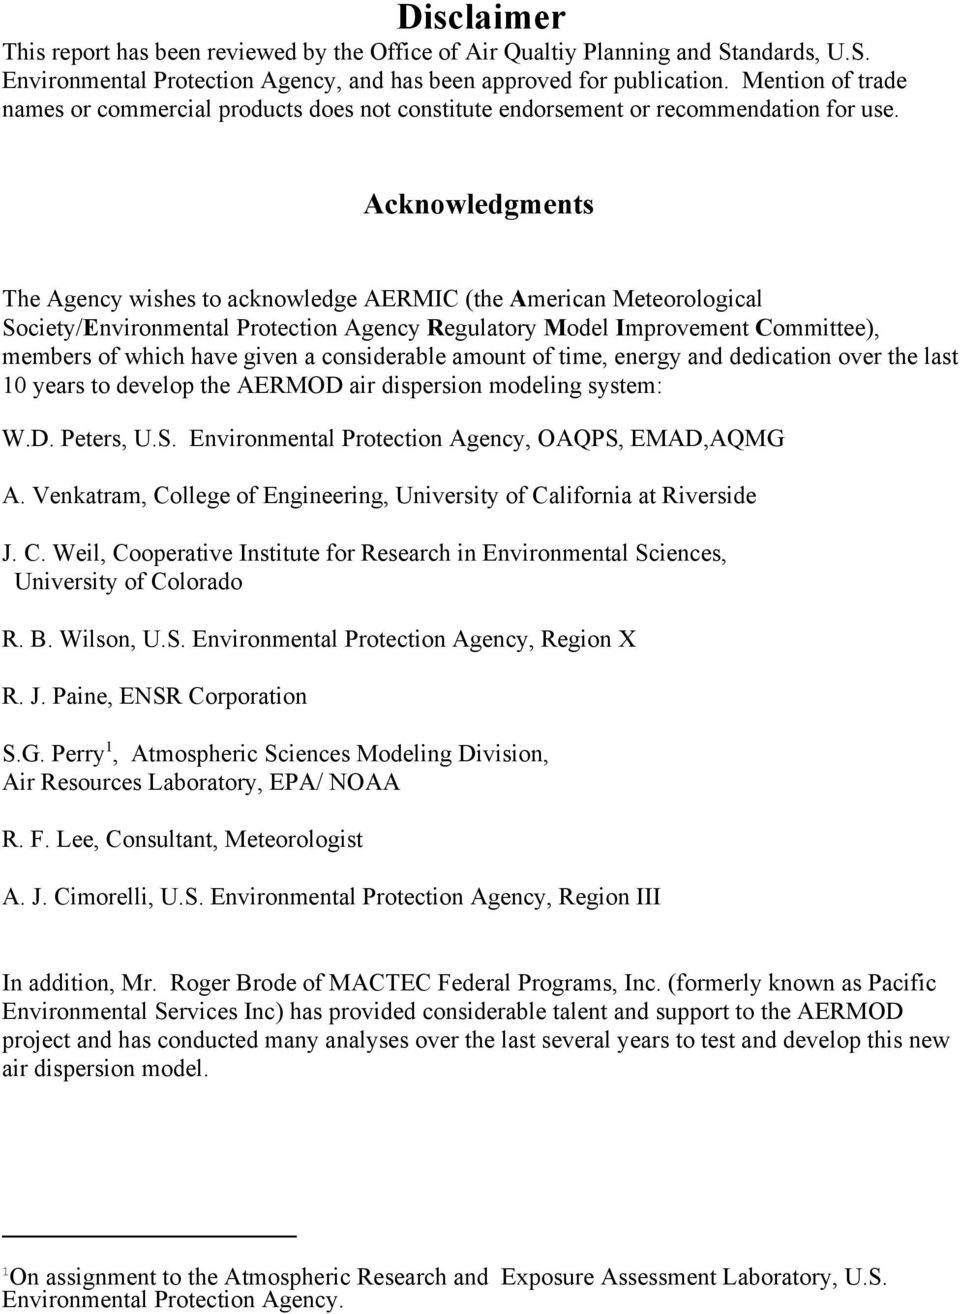 Acknowledgments The Agency wishes to acknowledge AERMIC (the American Meteorological Society/Environmental Protection Agency Regulatory Model Improvement Committee), members of which have given a